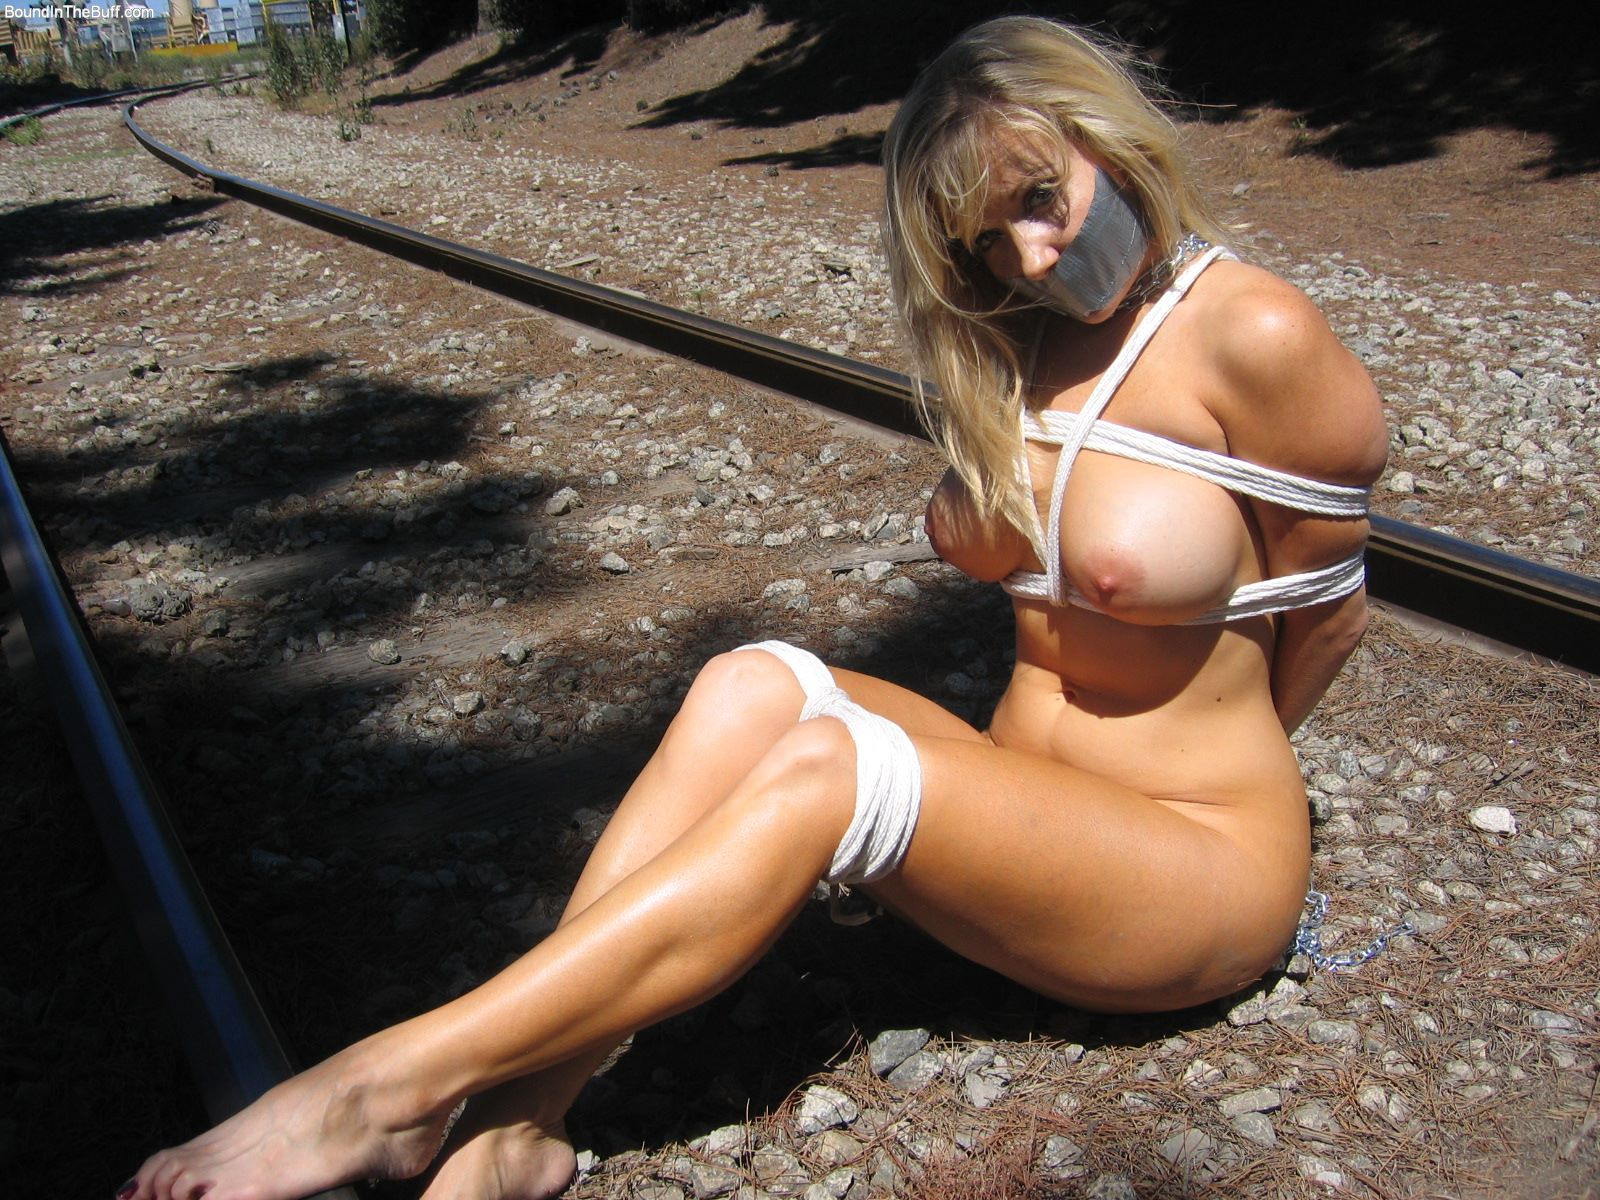 Abducted MILF is put in bondage, gagged and exposed to danger